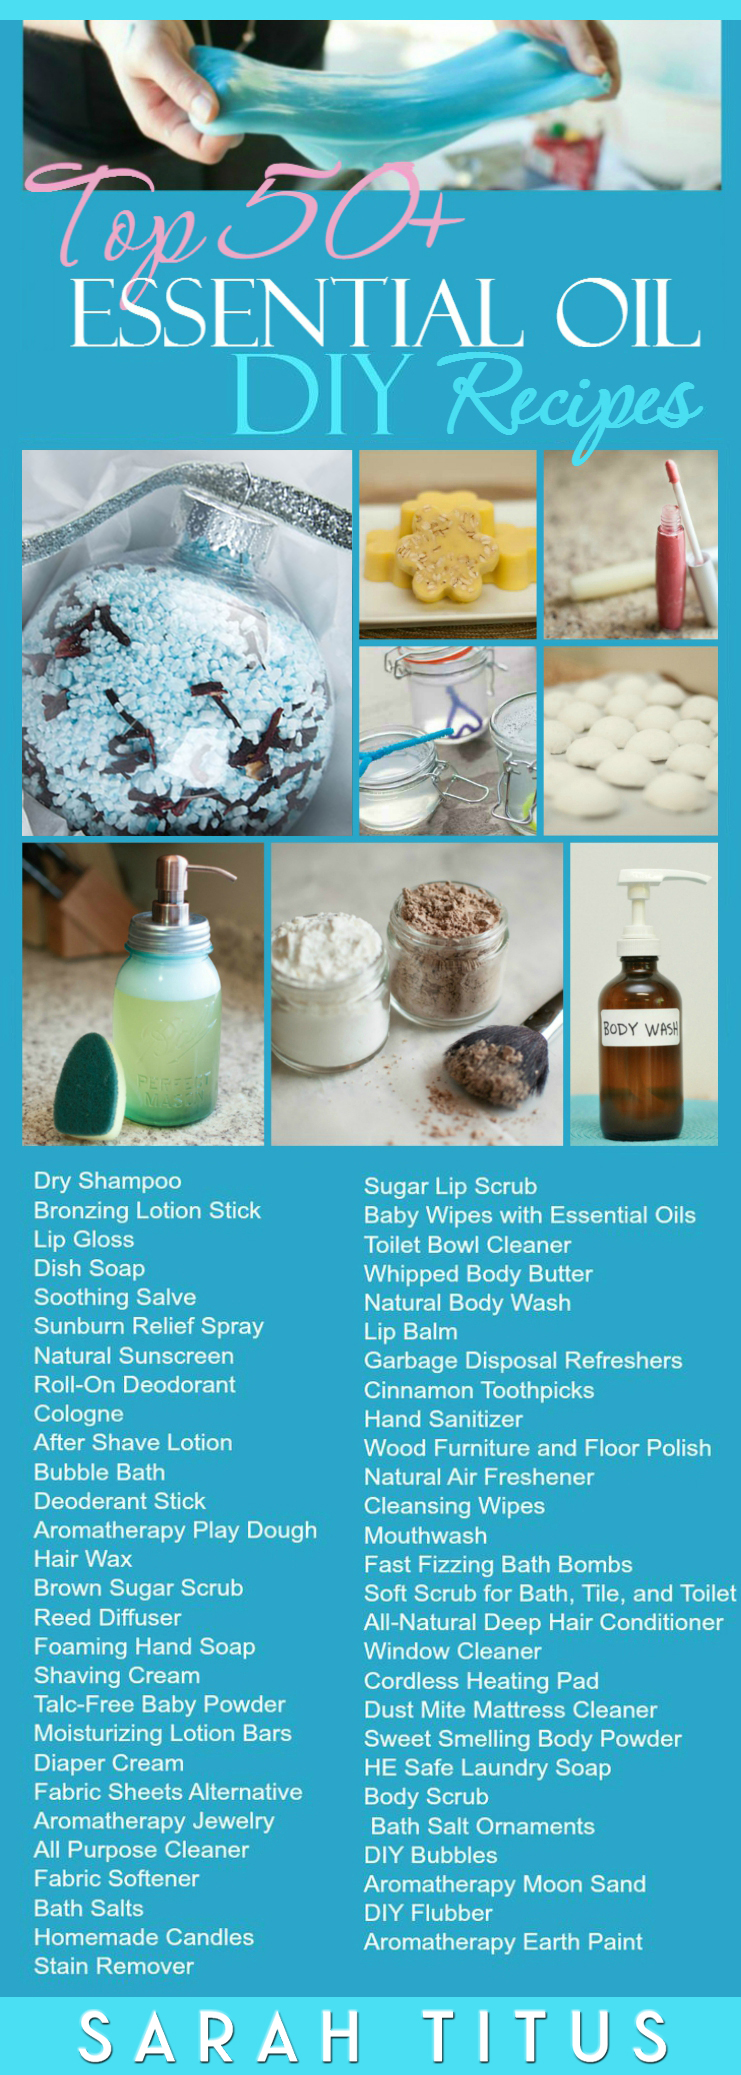 Save money by making your own really cool items from things you have around the house! Top 50 Essential Oils DIY Recipes. #diyrecipes #essentialoils #essentialoildiy #eodiy #eodiyrecipes